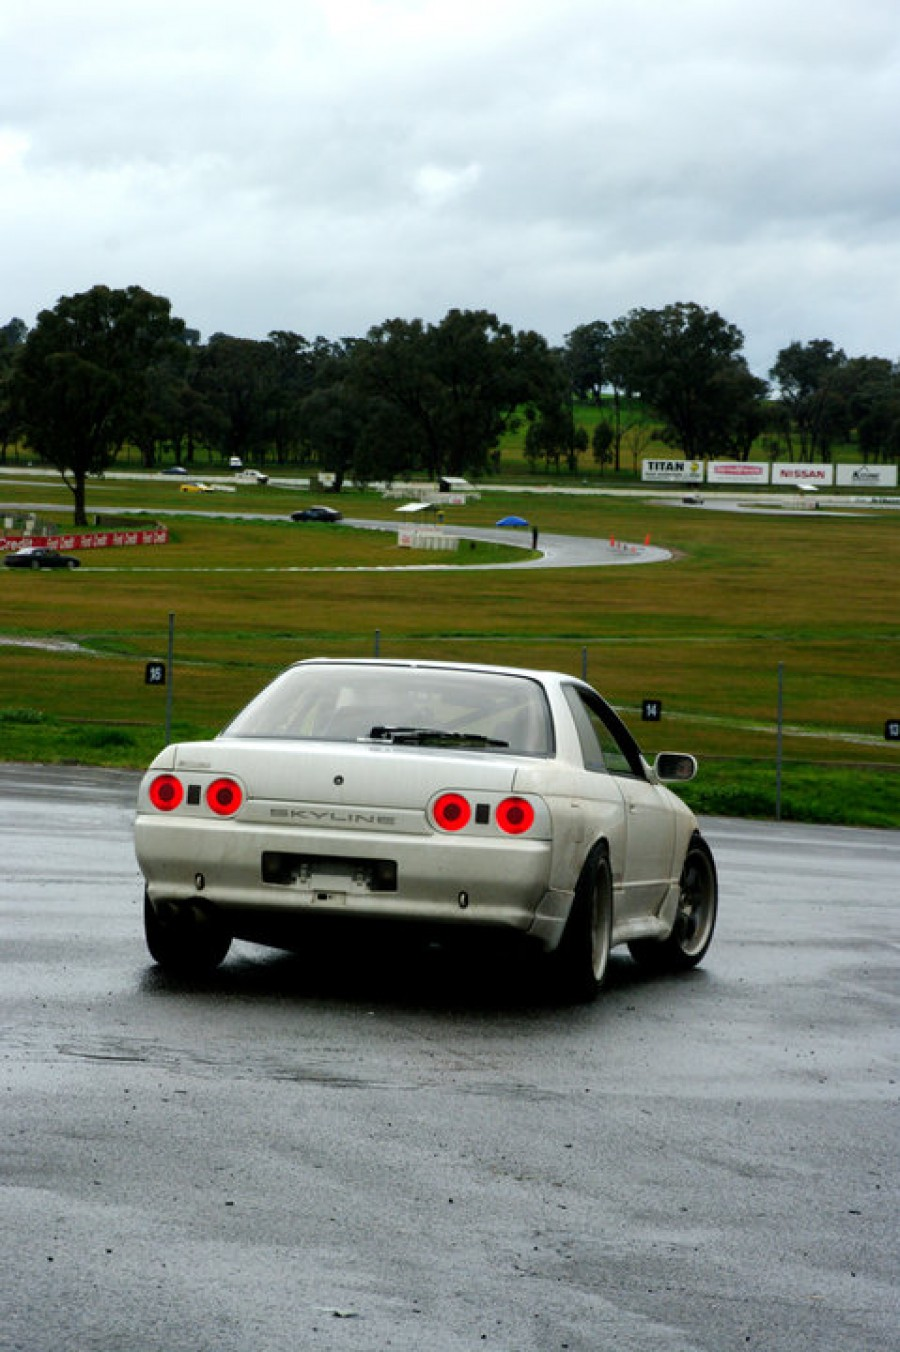 Nissan Skyline R32 wheels Rays Volk Racing GT-7 17″ 8J ET15 215/45 9J ET21 235/45 coupe